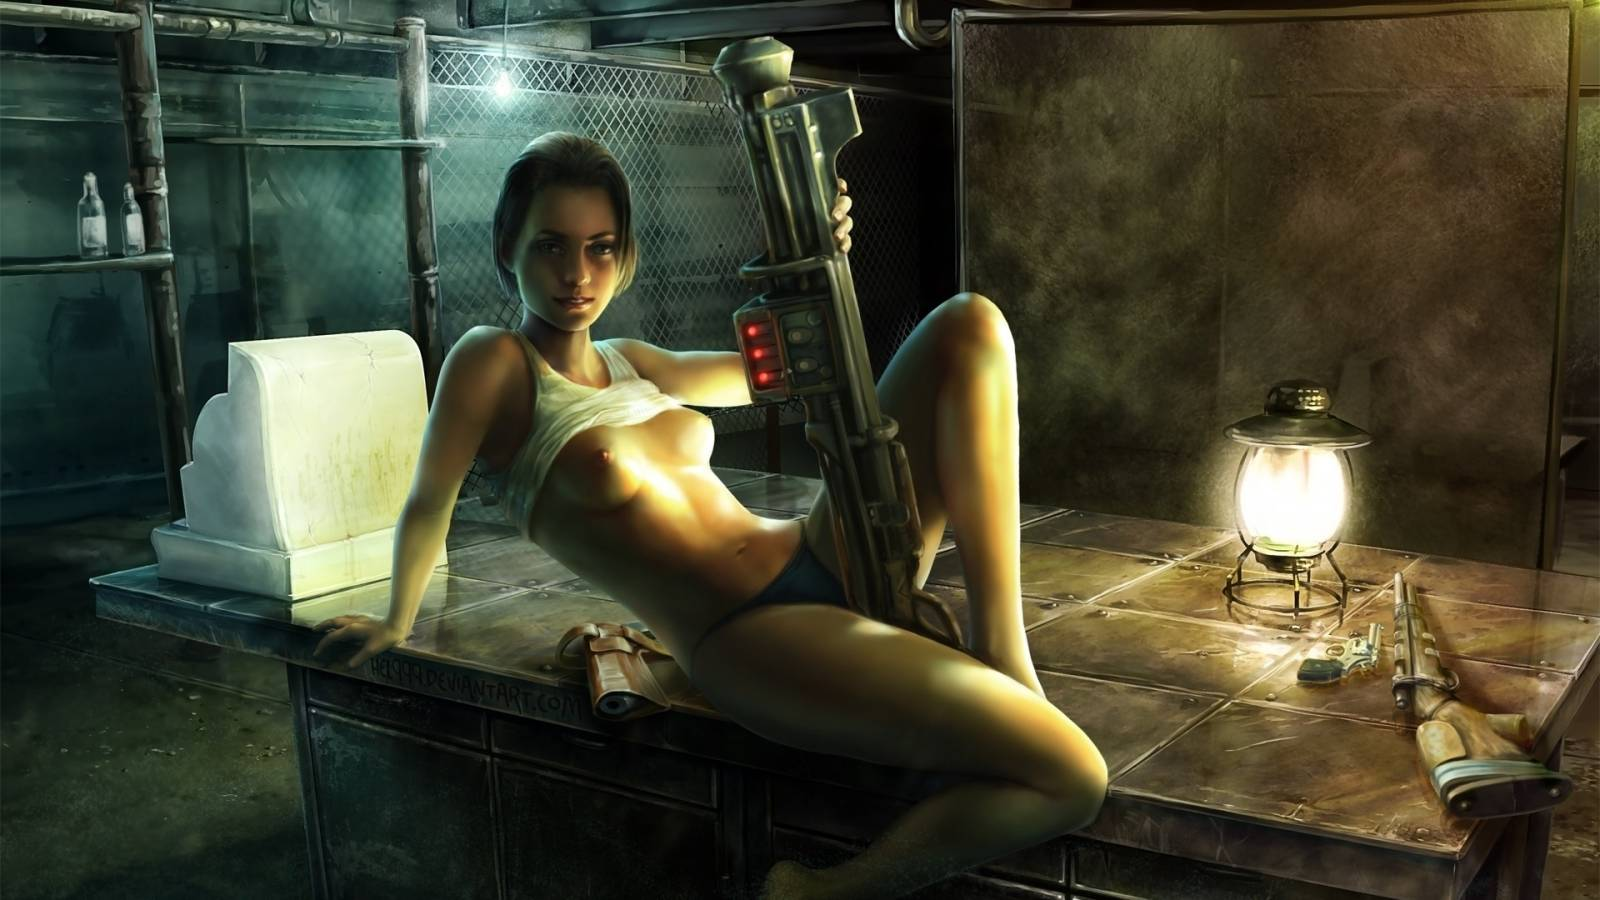 Erotic for fallout 3 nude clip